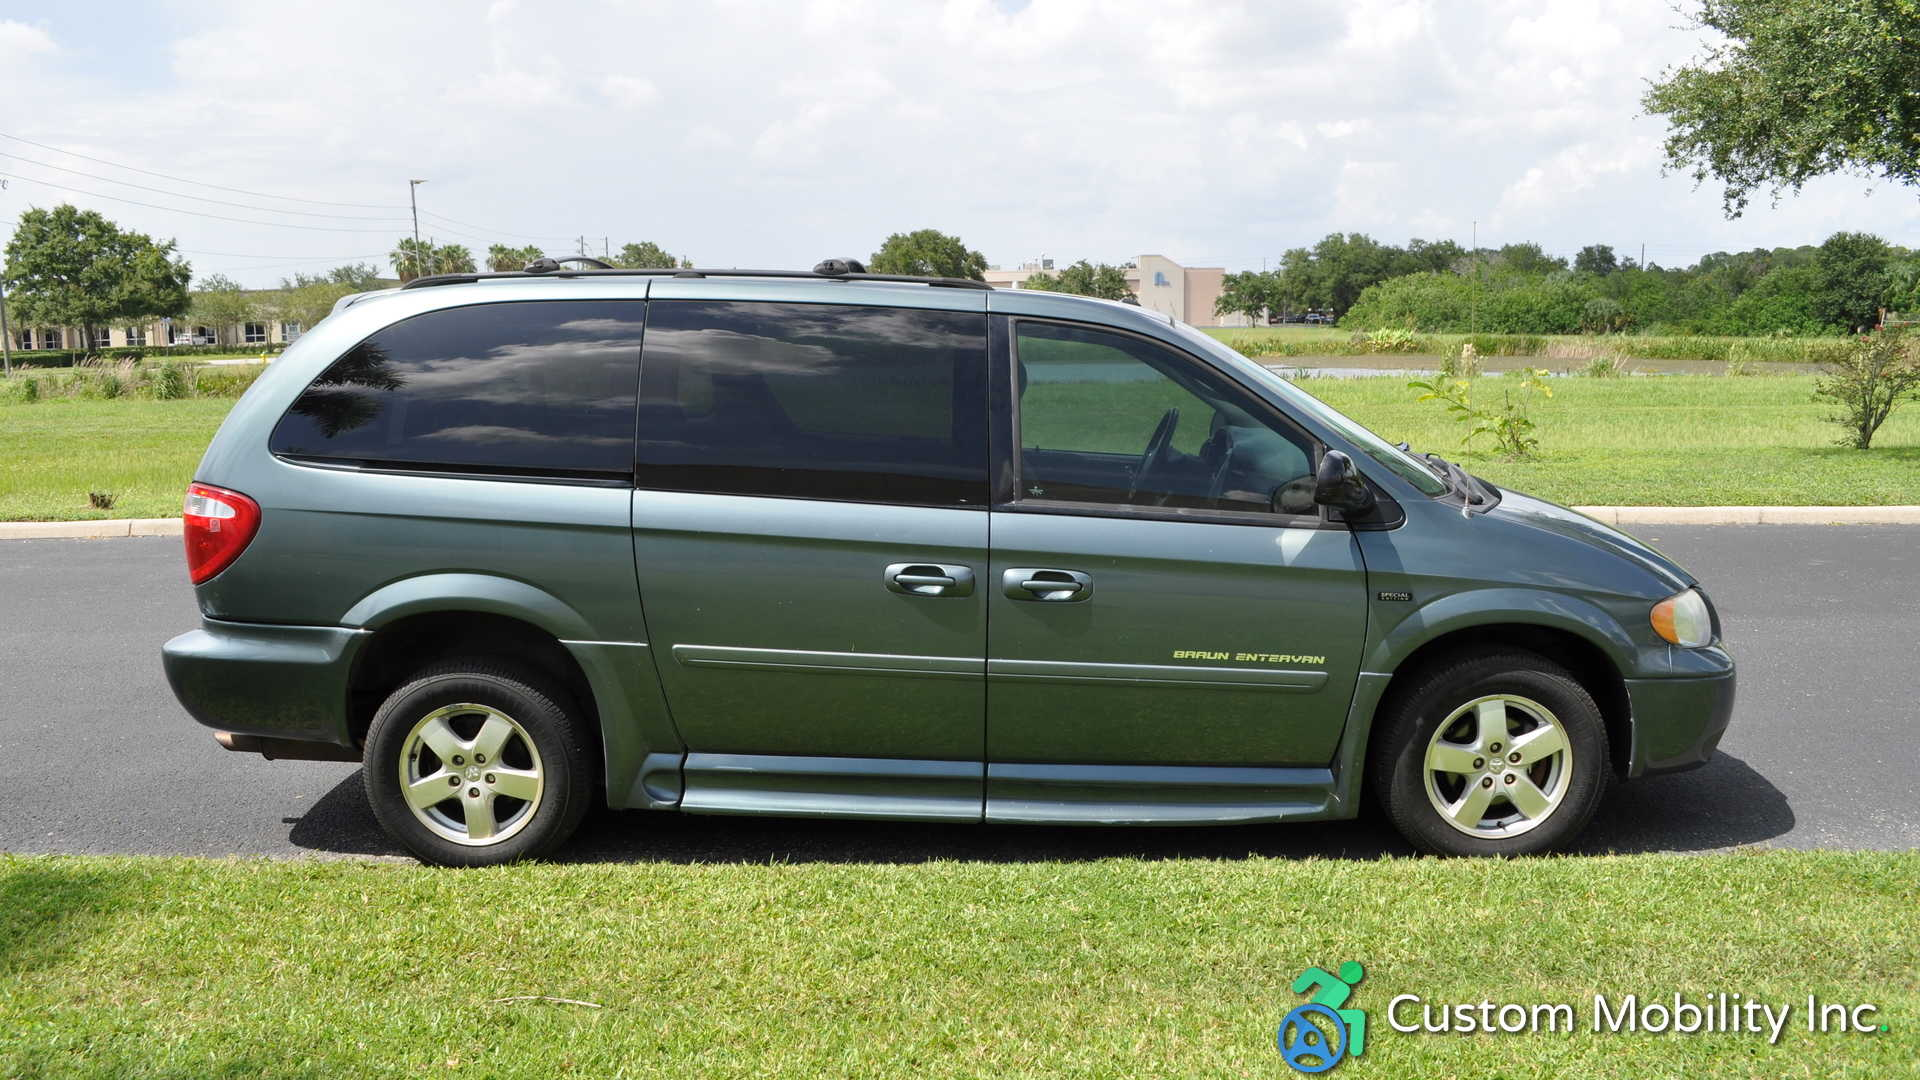 2007 Dodge Grand Caravan | Stock: 7R171933 | Wheelchair Van For Sale|  Custom Mobility Of Florida